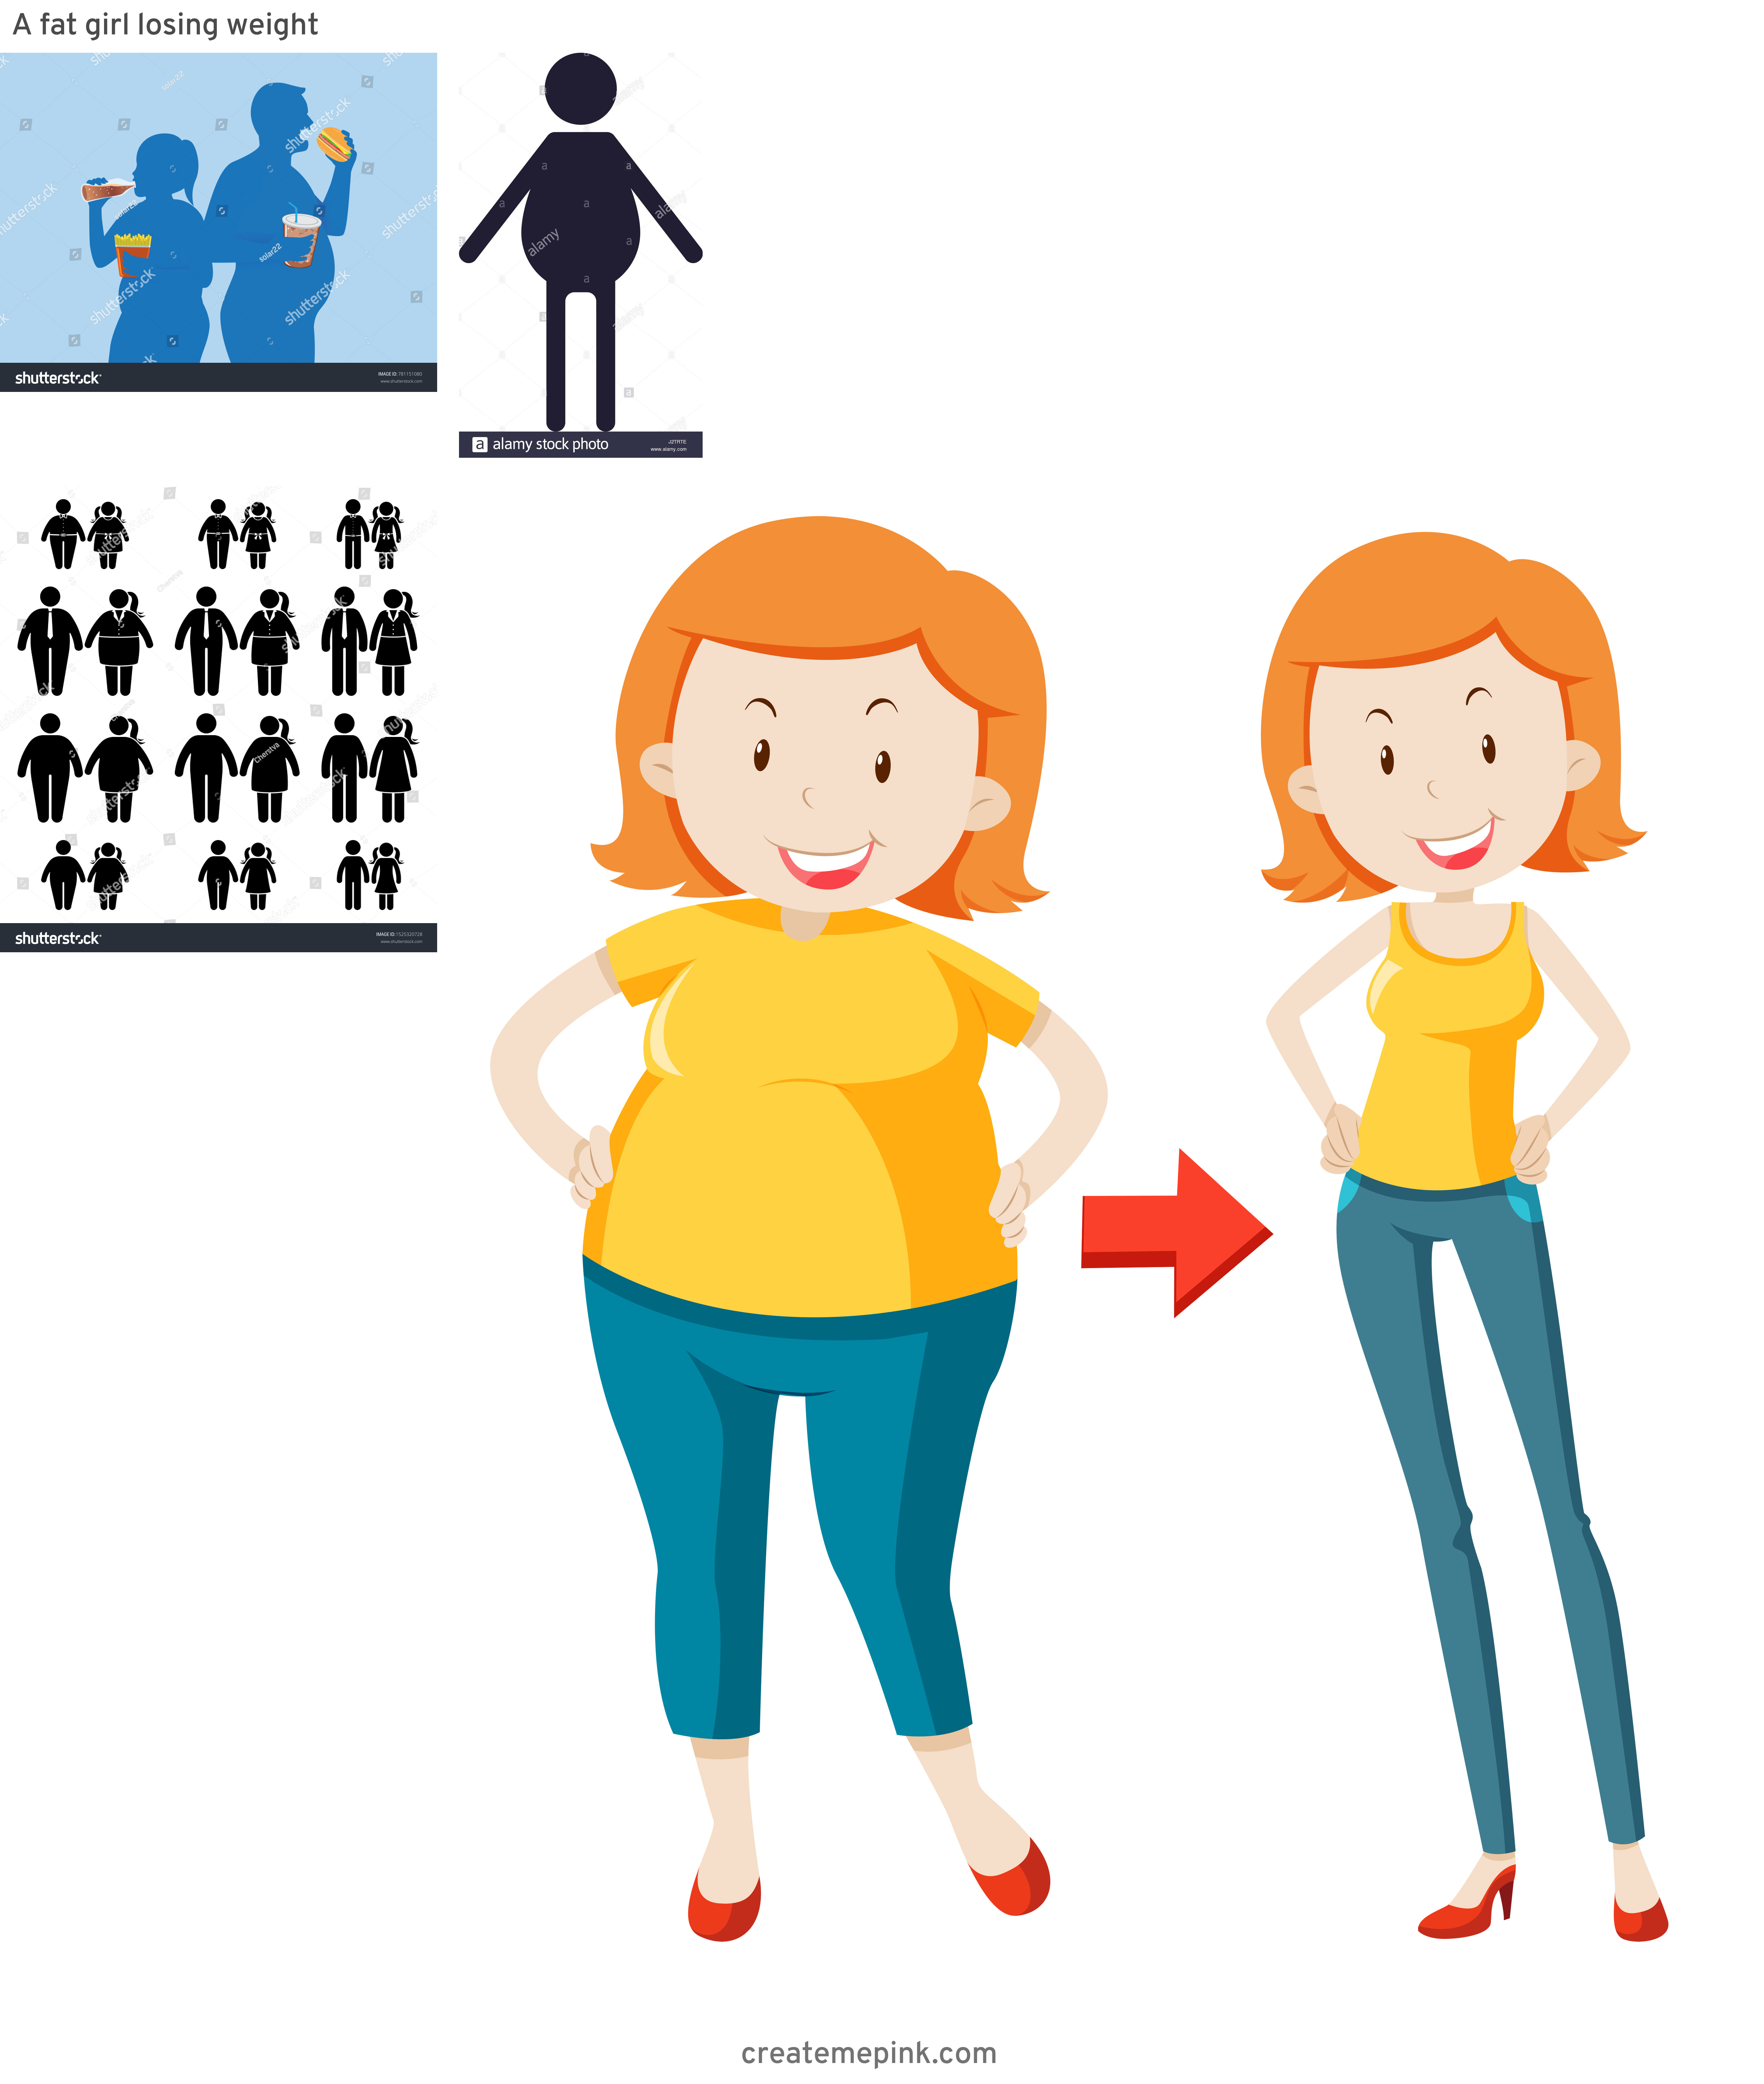 People Silhouette Vector Illustration Of Fat: A Fat Girl Losing Weight